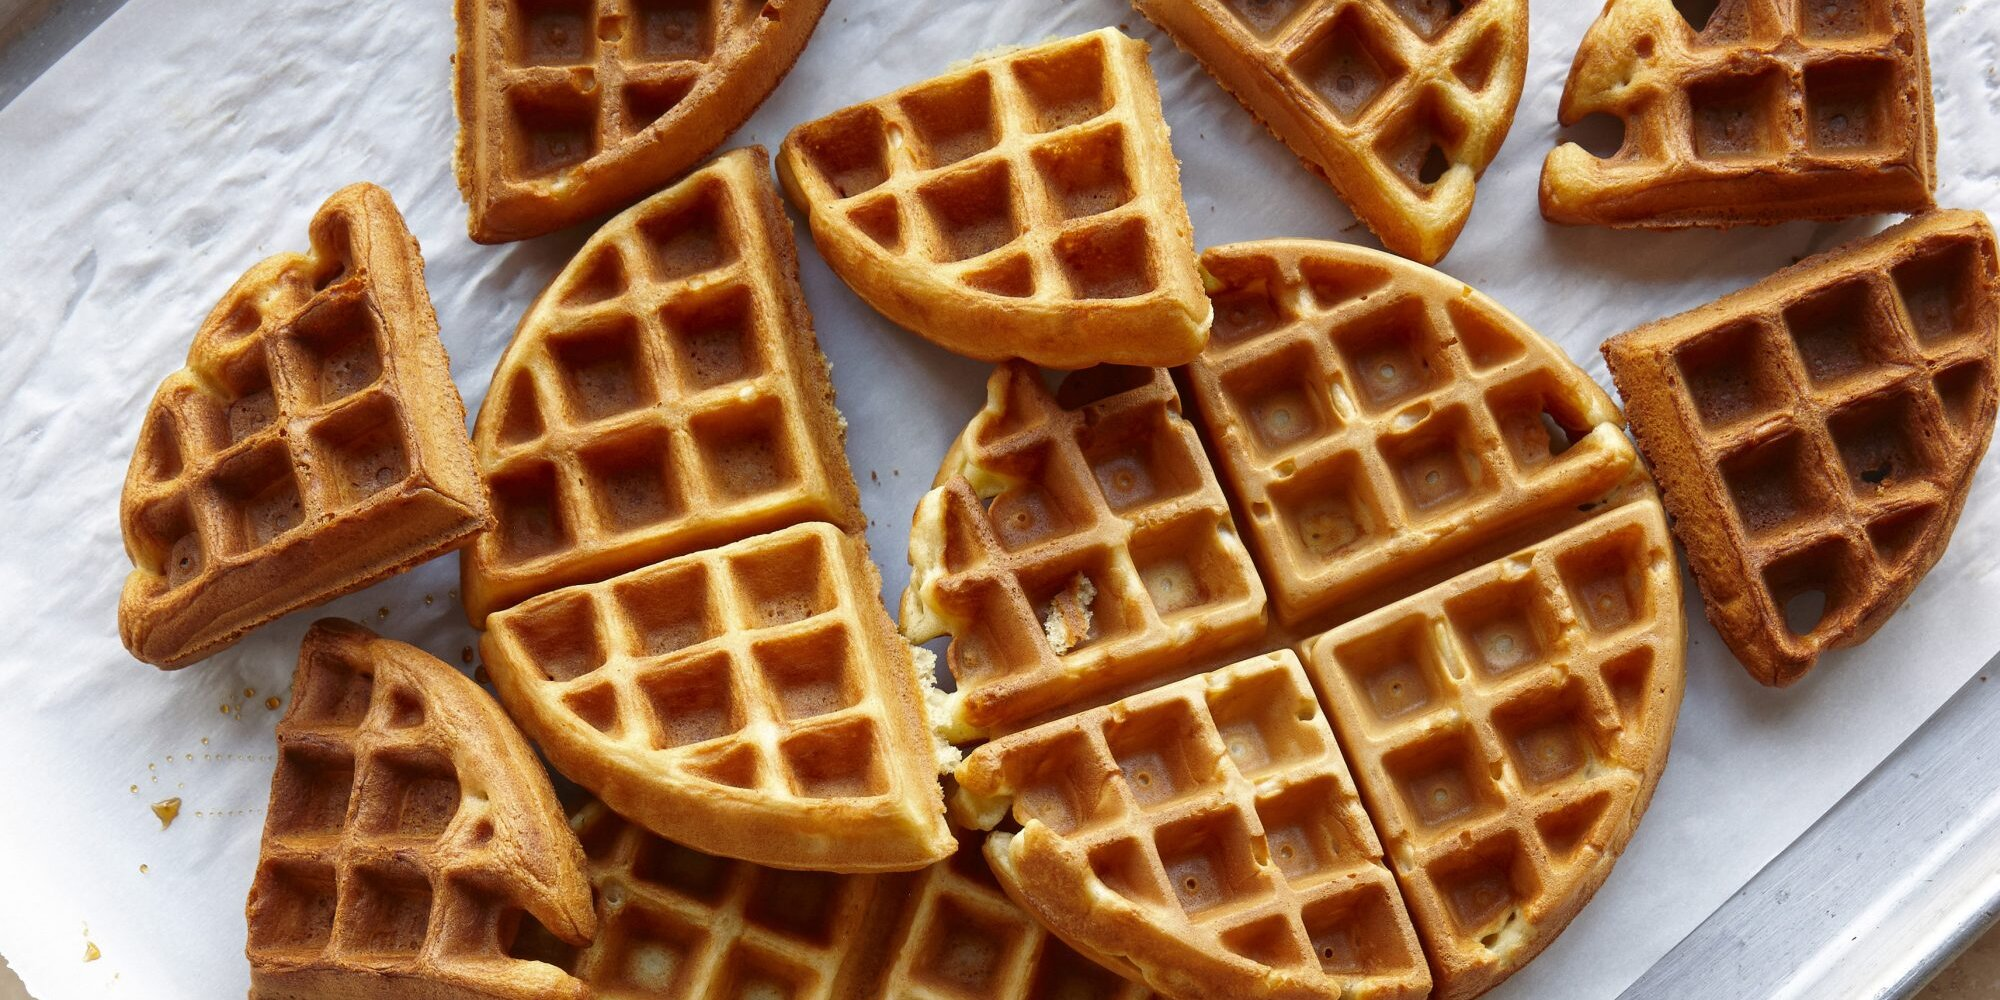 This Simple Hack Is the Secret to Making Picture-Perfect Waffles